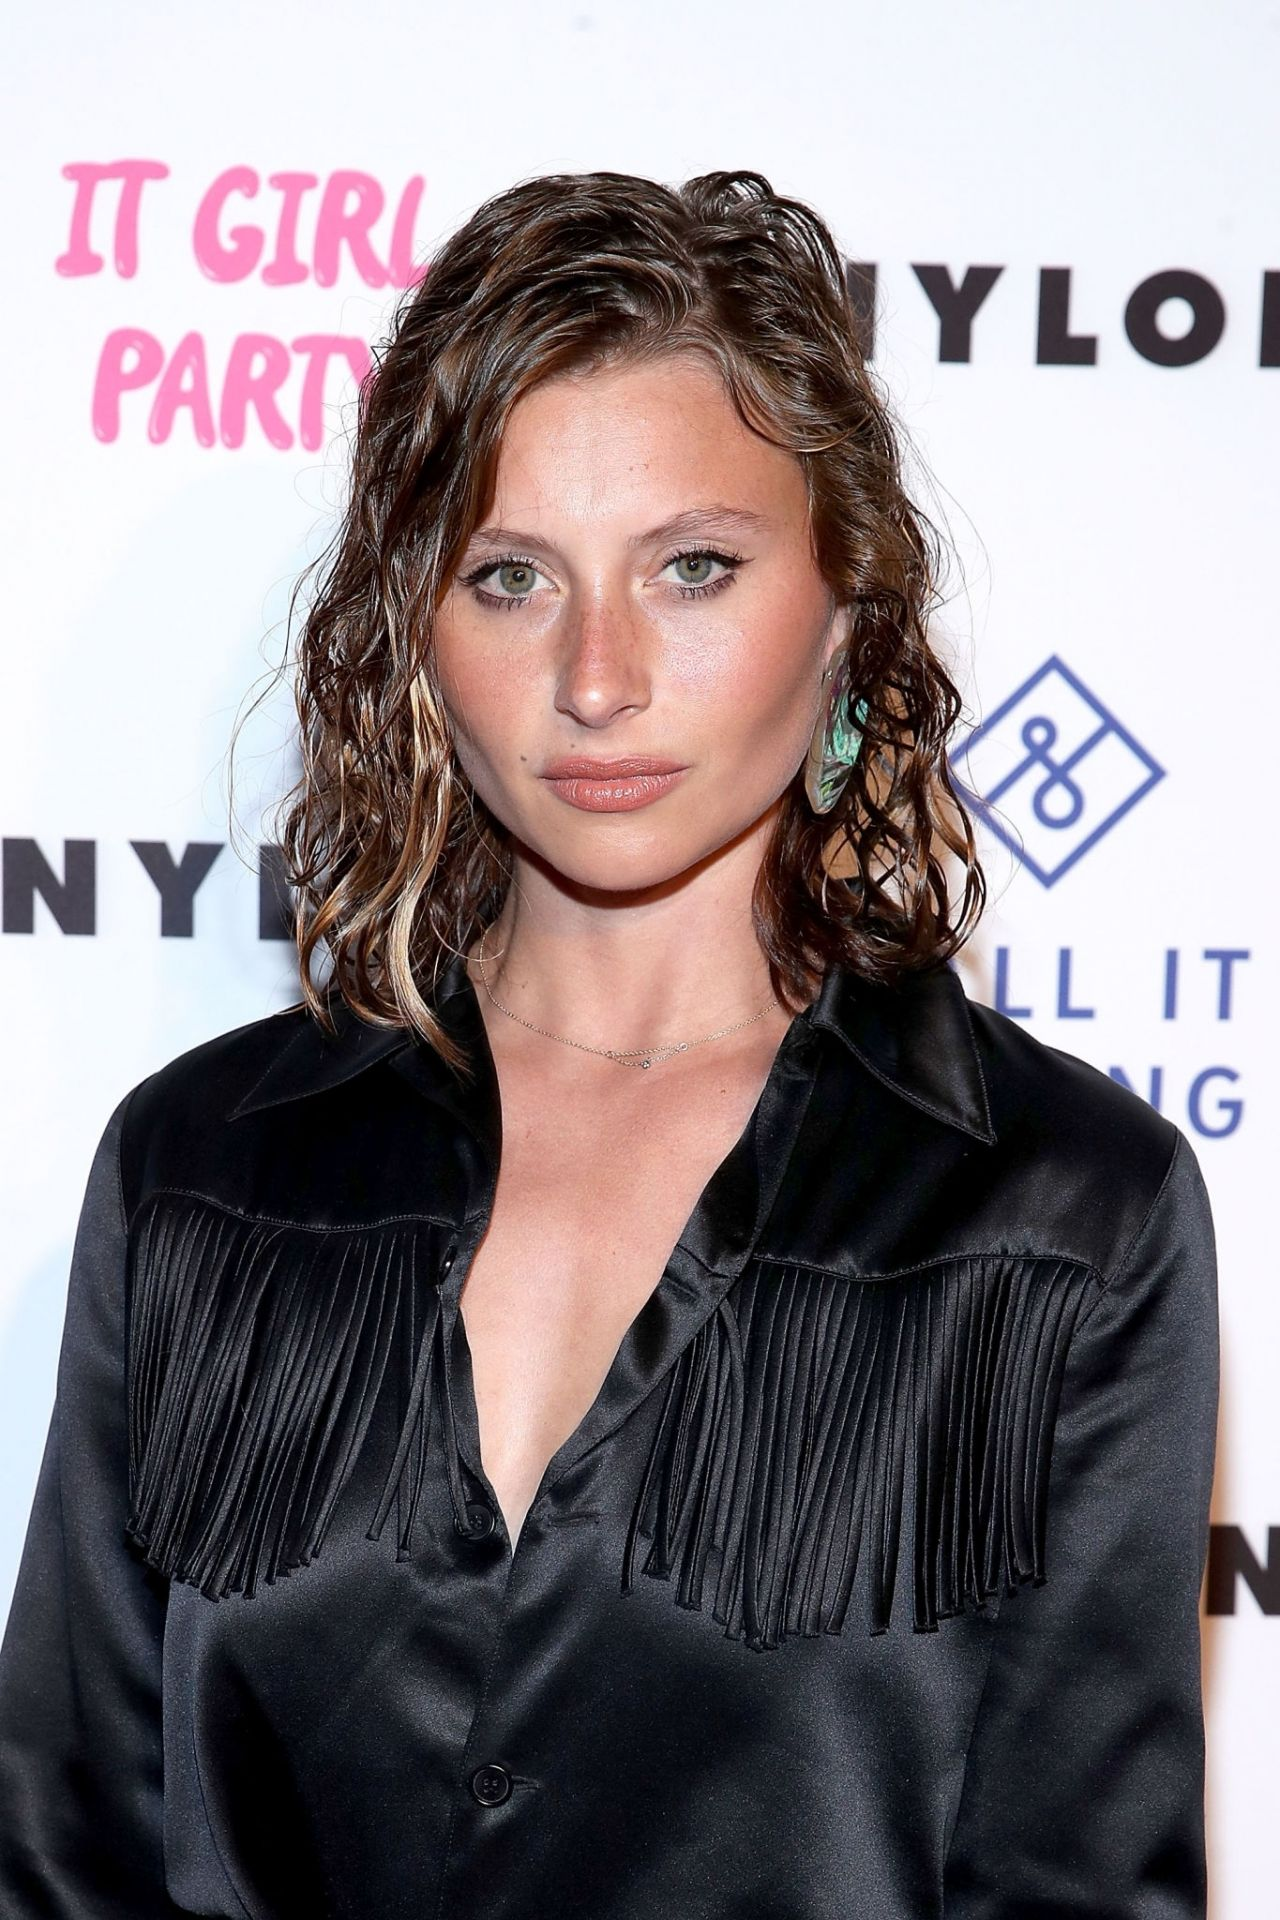 Alyson Aly Michalka Nude Photos 35